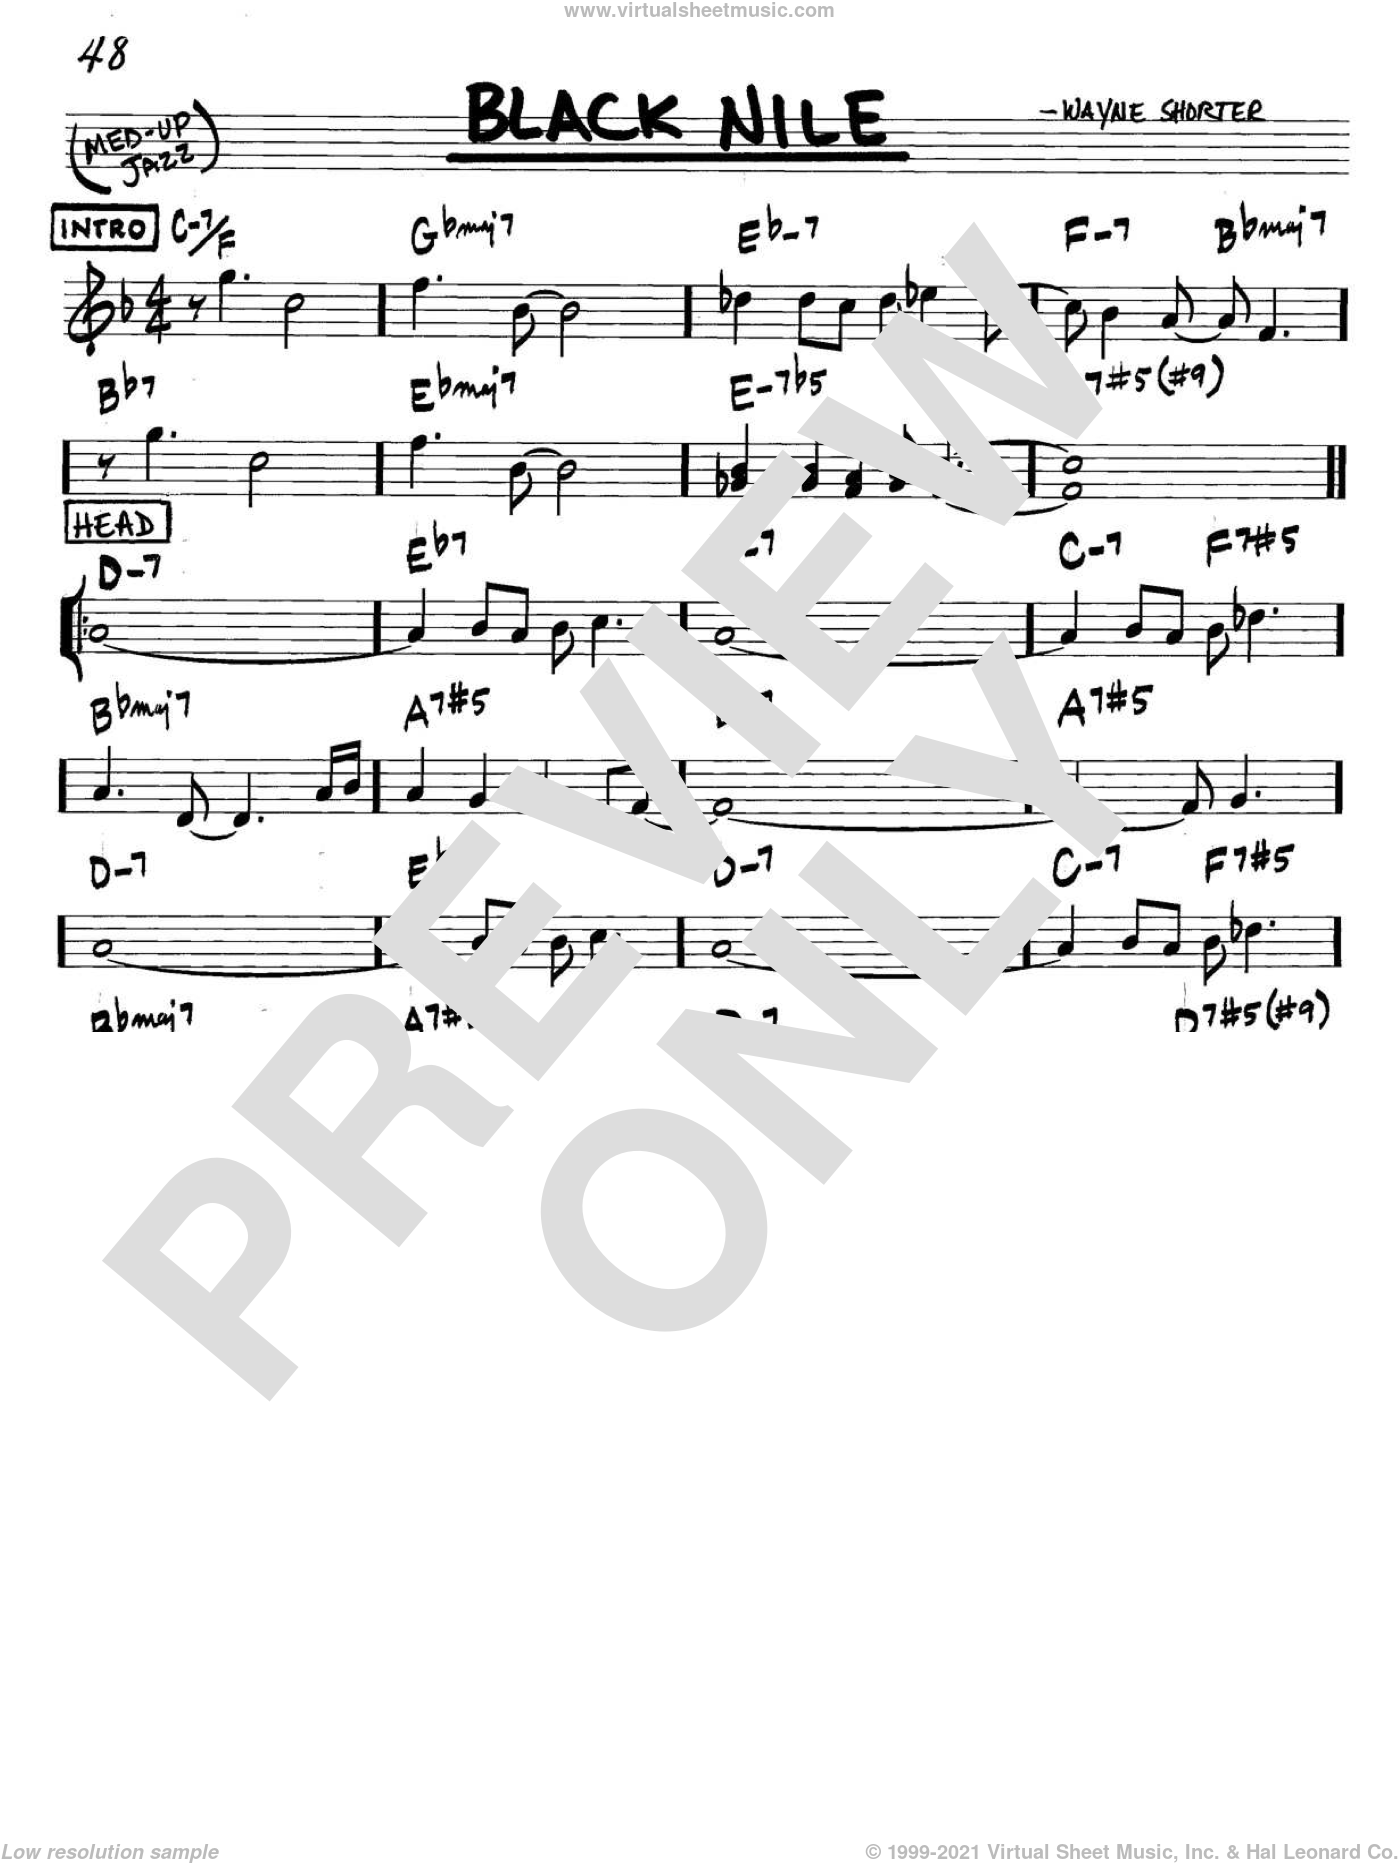 Black Nile sheet music for voice and other instruments (C) by Wayne Shorter